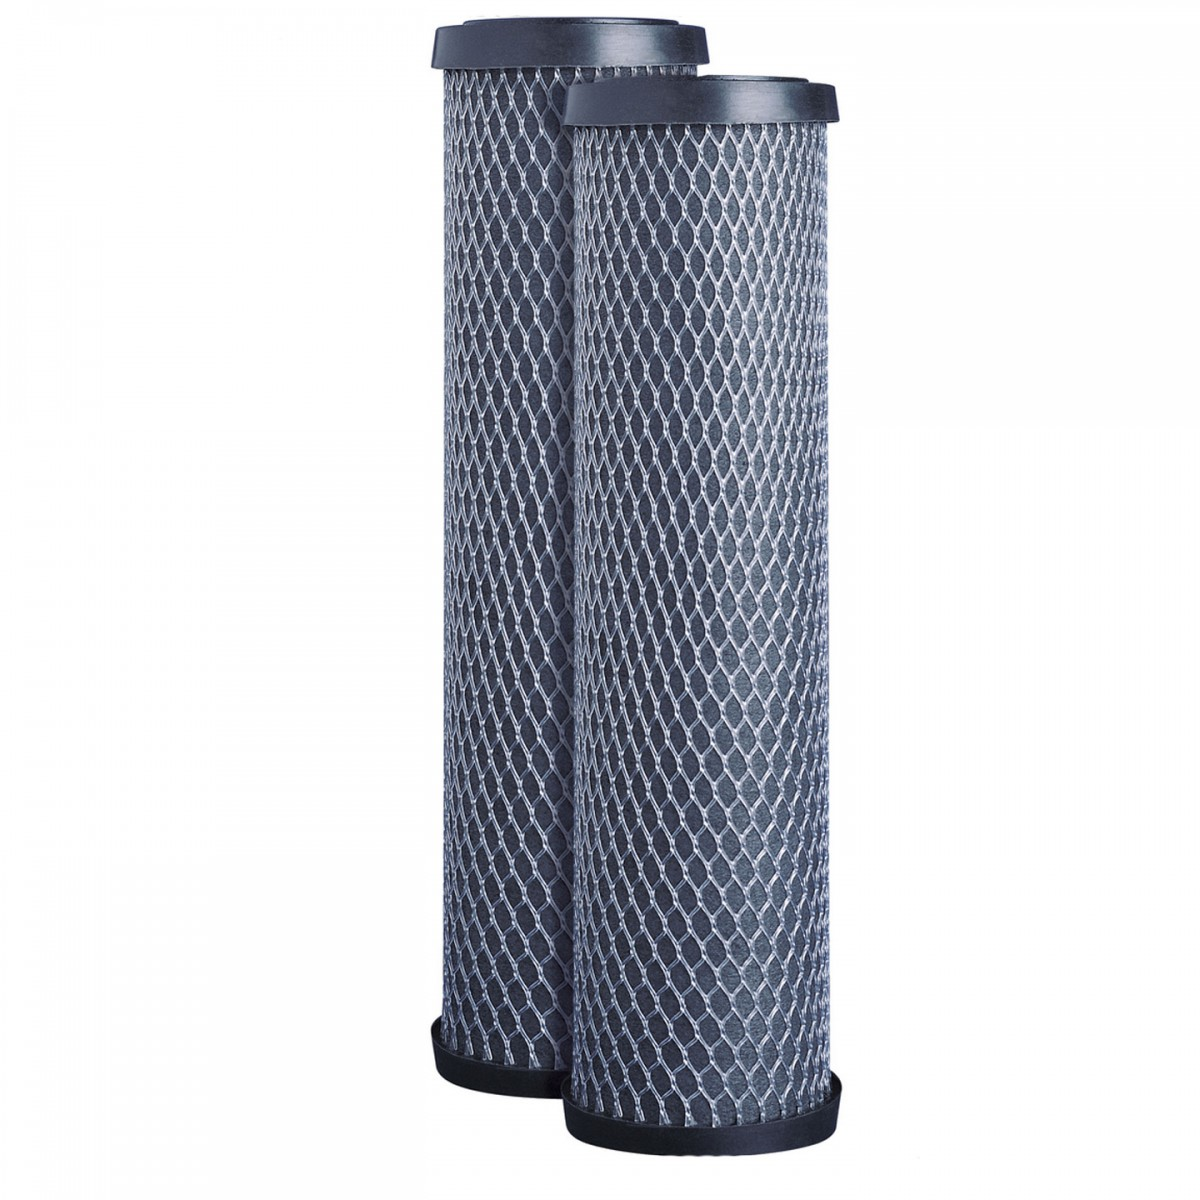 how to choose water filter cartridge